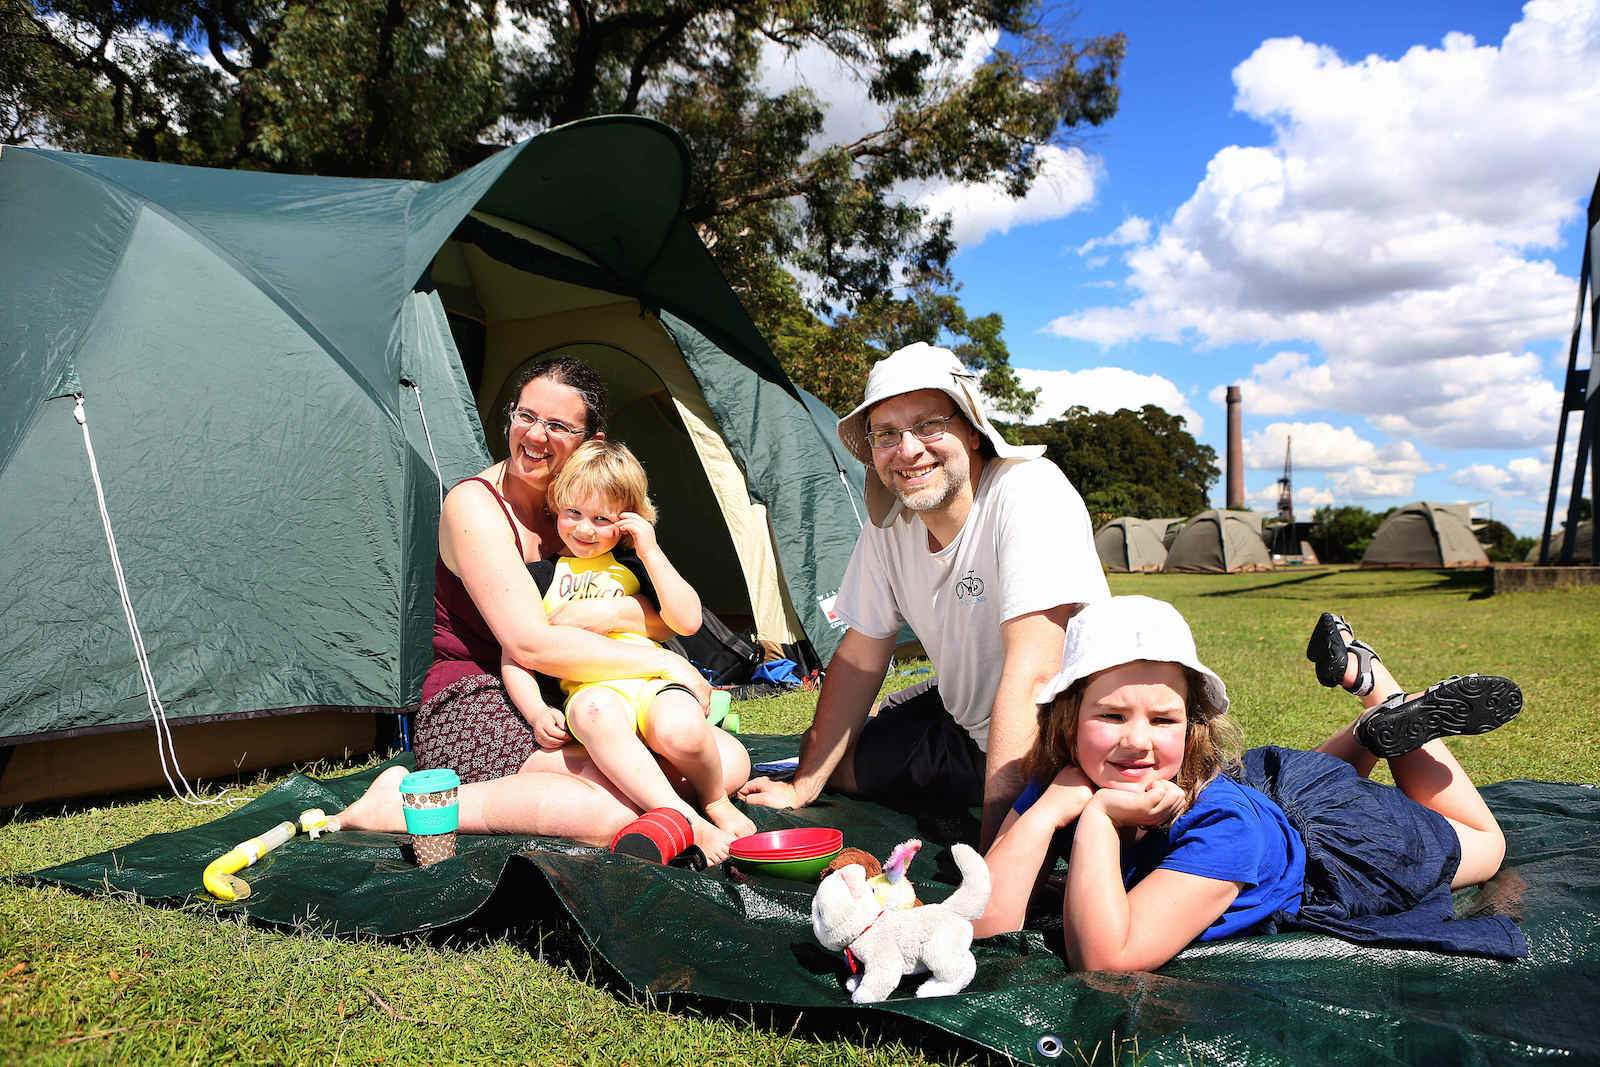 07/04/2017: Jeremy and Louise Clines with their children Nathaniel,5 , and Esther, 7 from Sheffield, England, camping at Cockatoo Island in Sydney. Pic by James Croucher